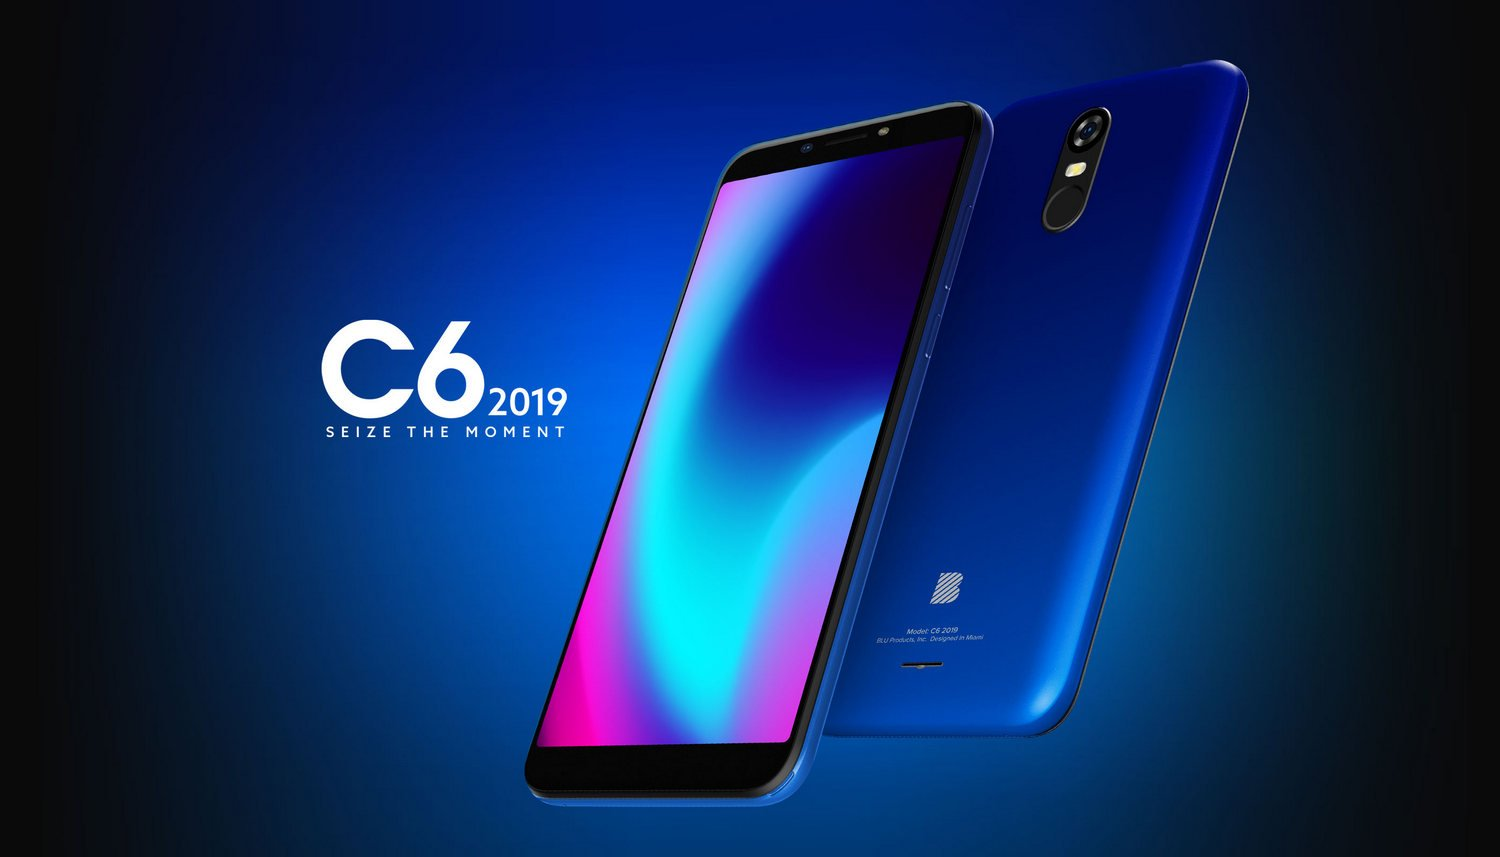 How to Root BLU C6 2019 with Magisk without TWRP